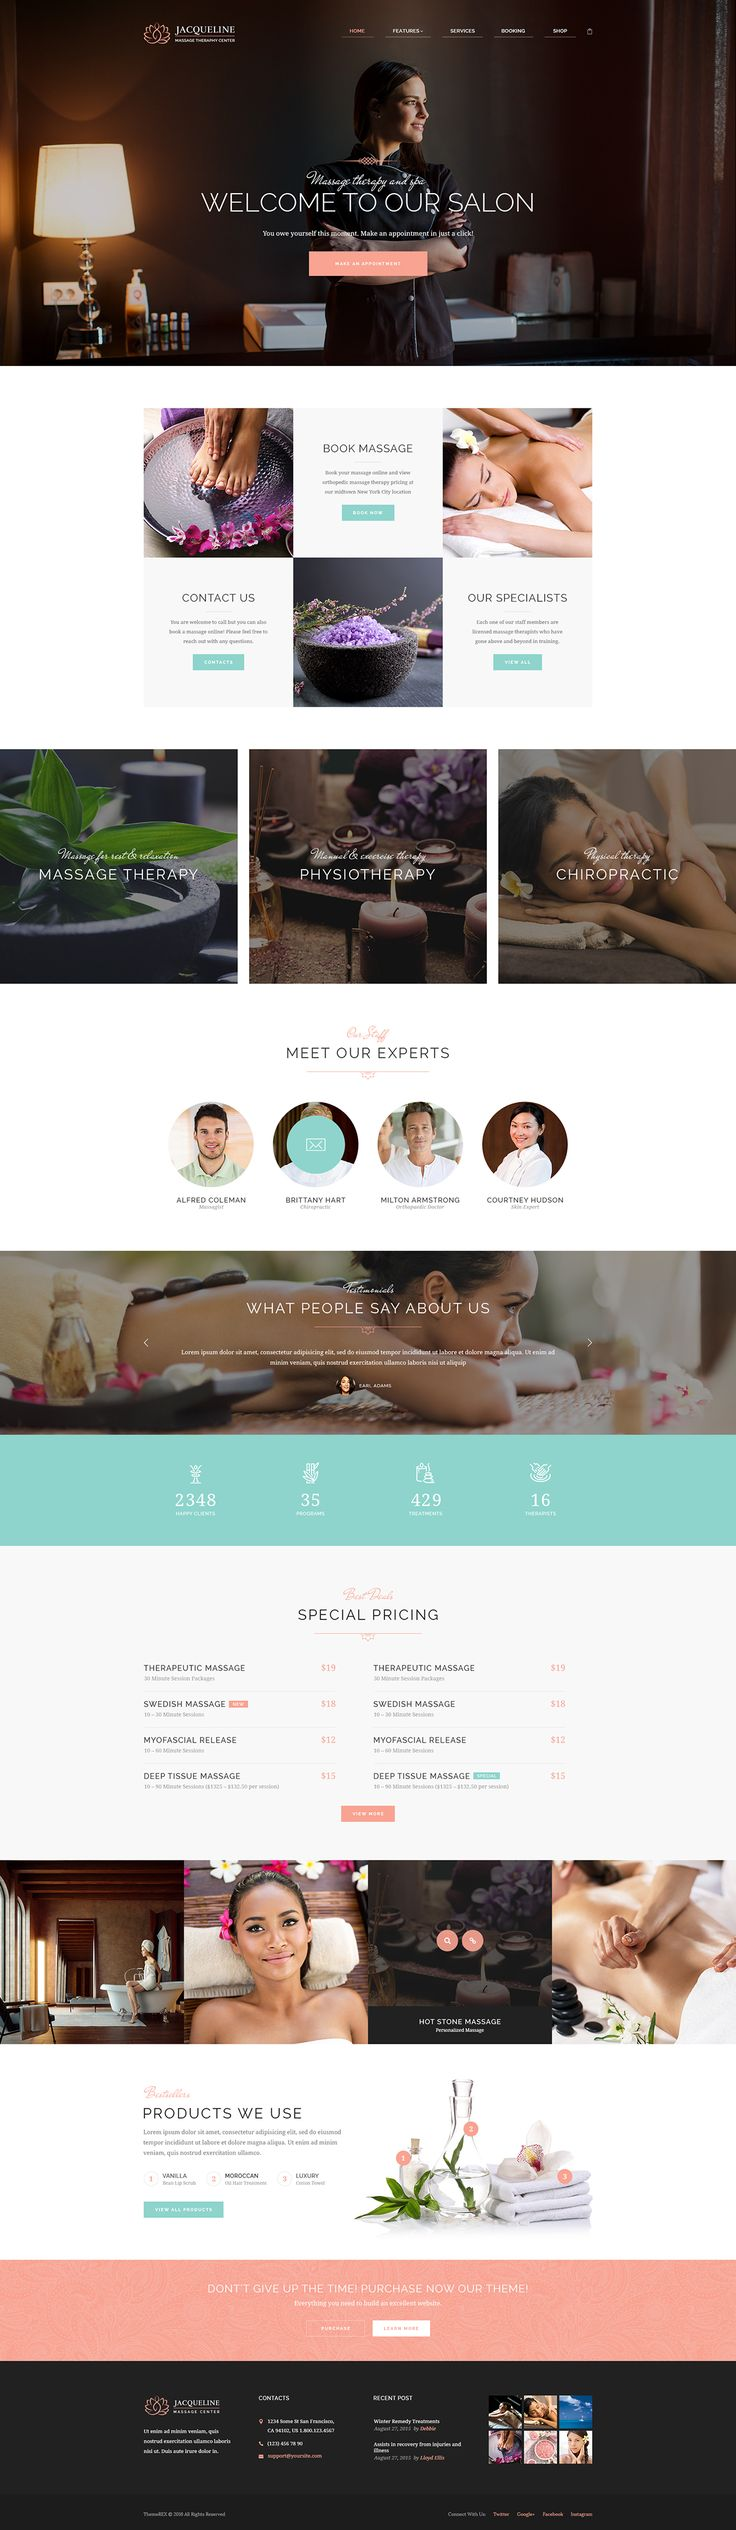 We are presenting you Jacqueline, a premium WordPress theme with advanced functionality and beautiful design. Jacqueline is right for you, if you seek to build a website for spa, beauty, hair or makeup salon, wellness center or massage services.